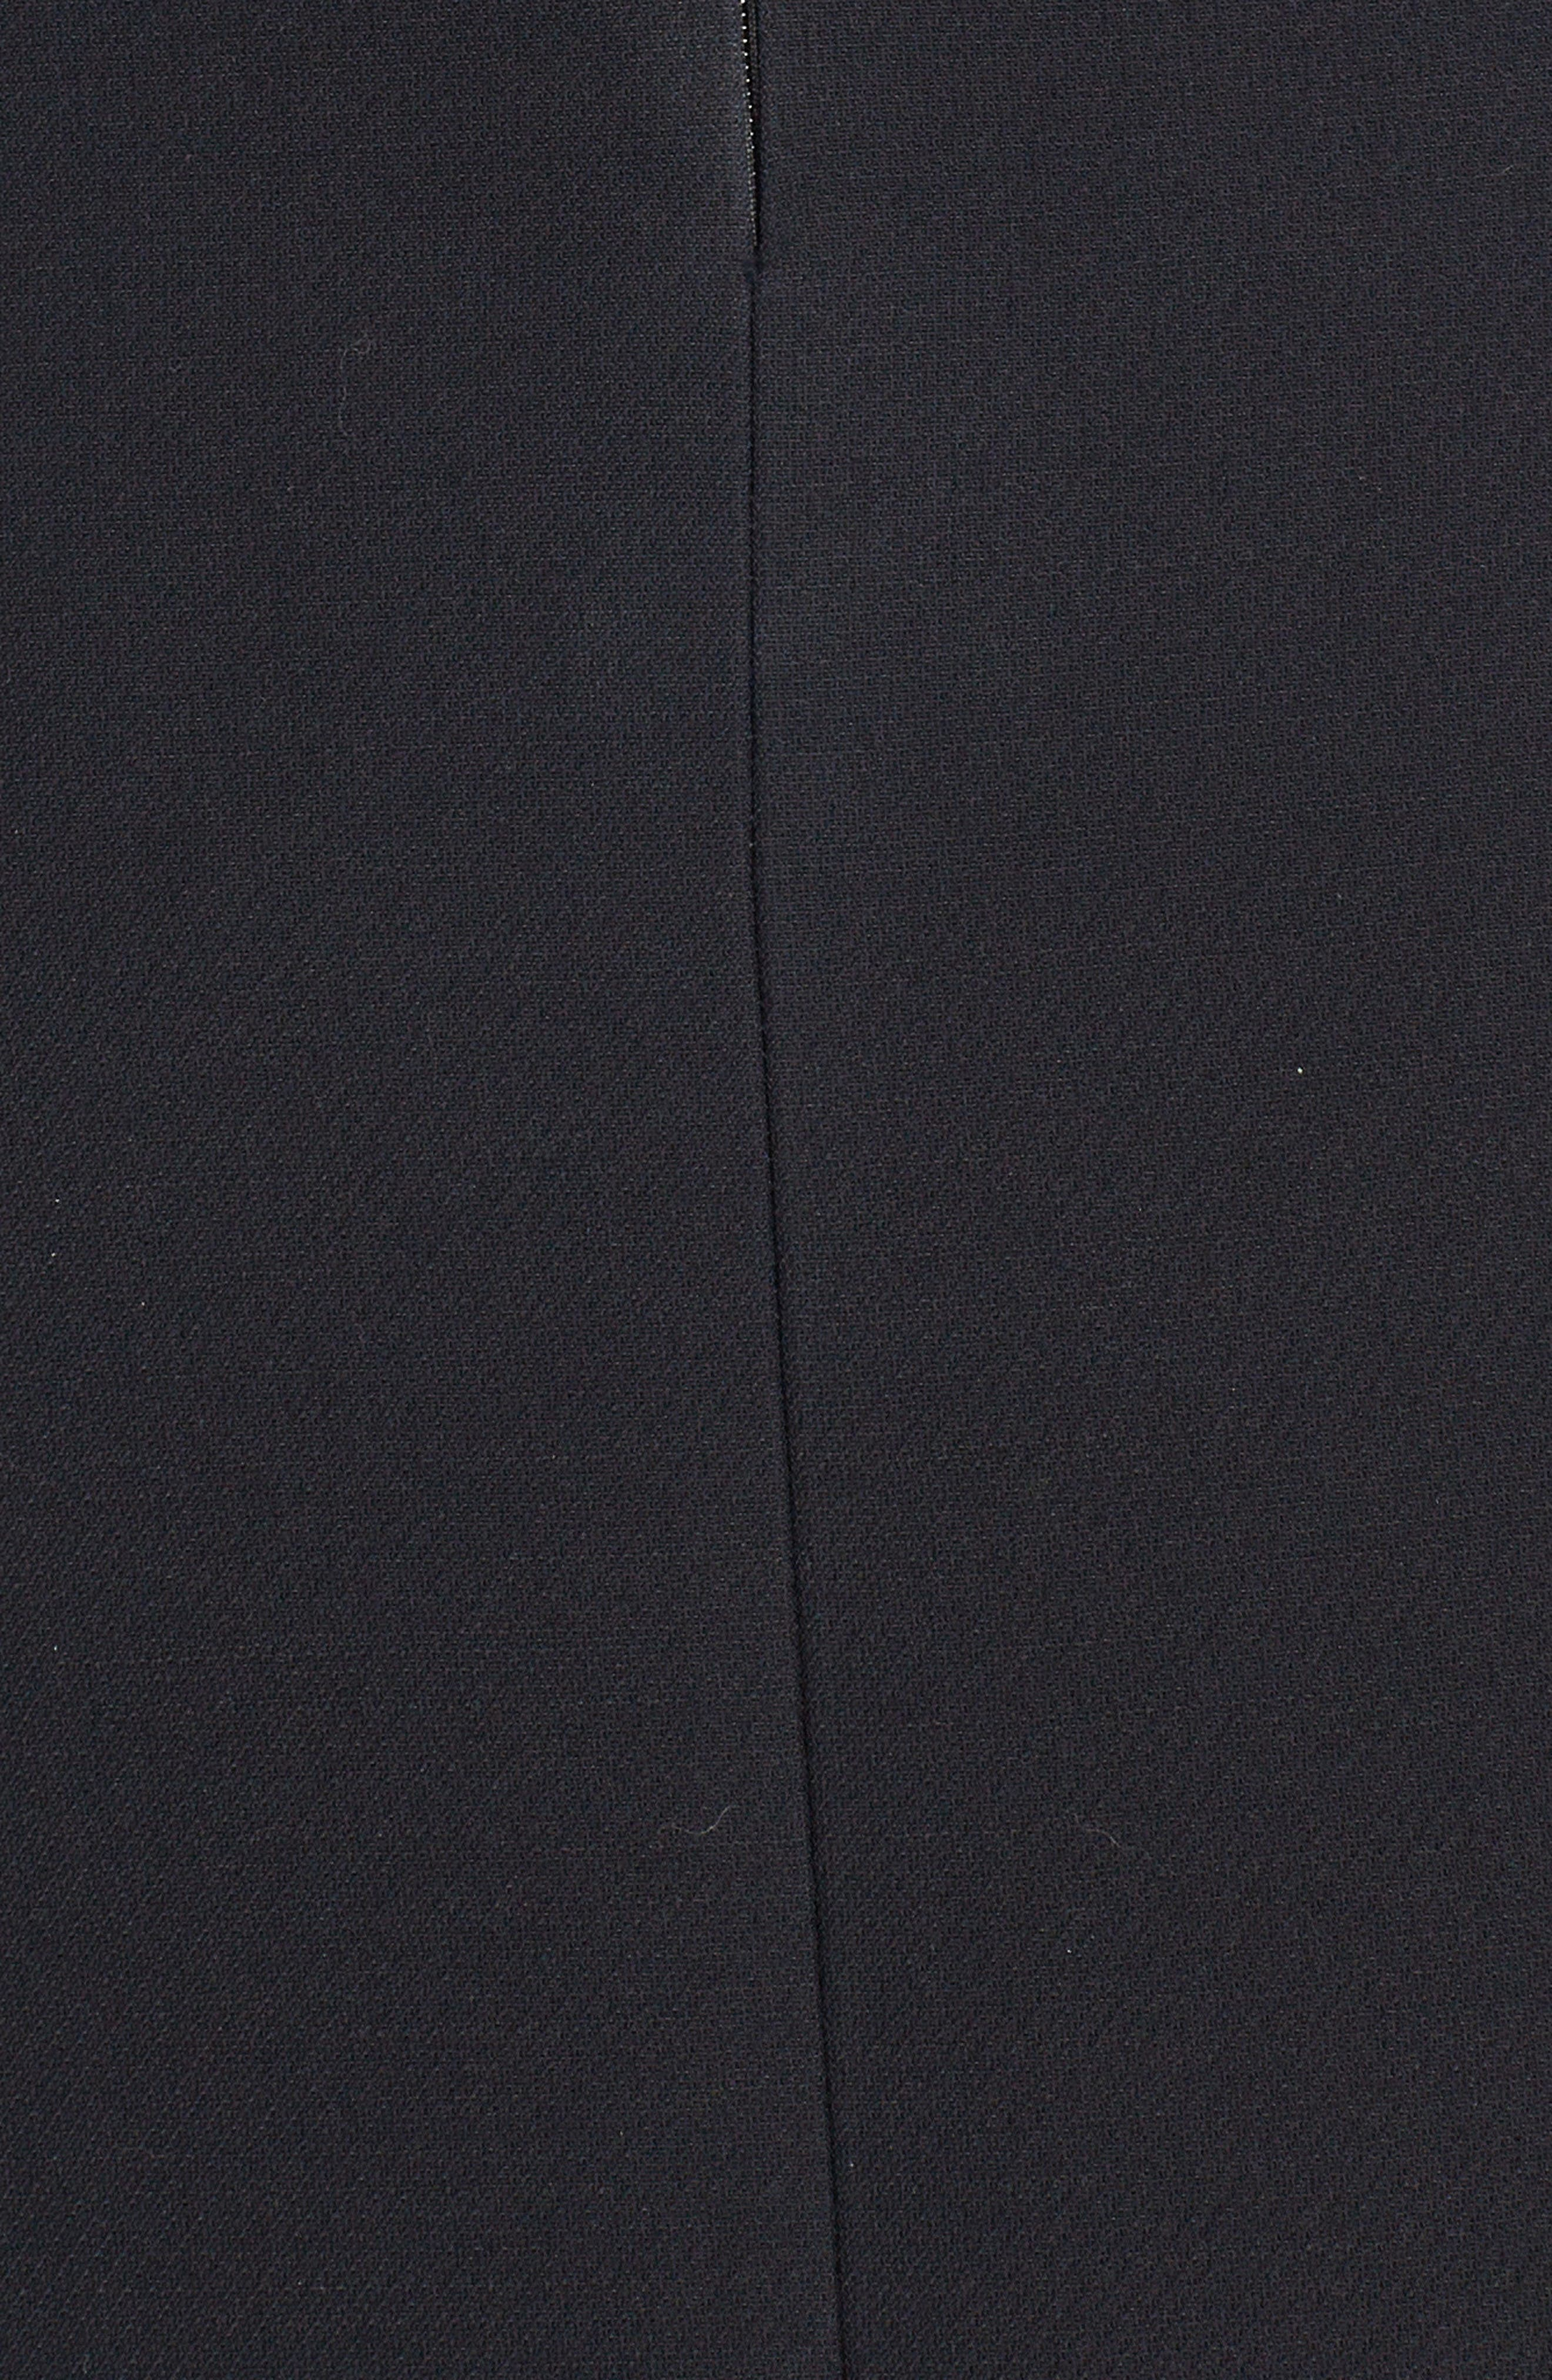 Wool & Silk Belted A-Line Skirt,                             Alternate thumbnail 5, color,                             001